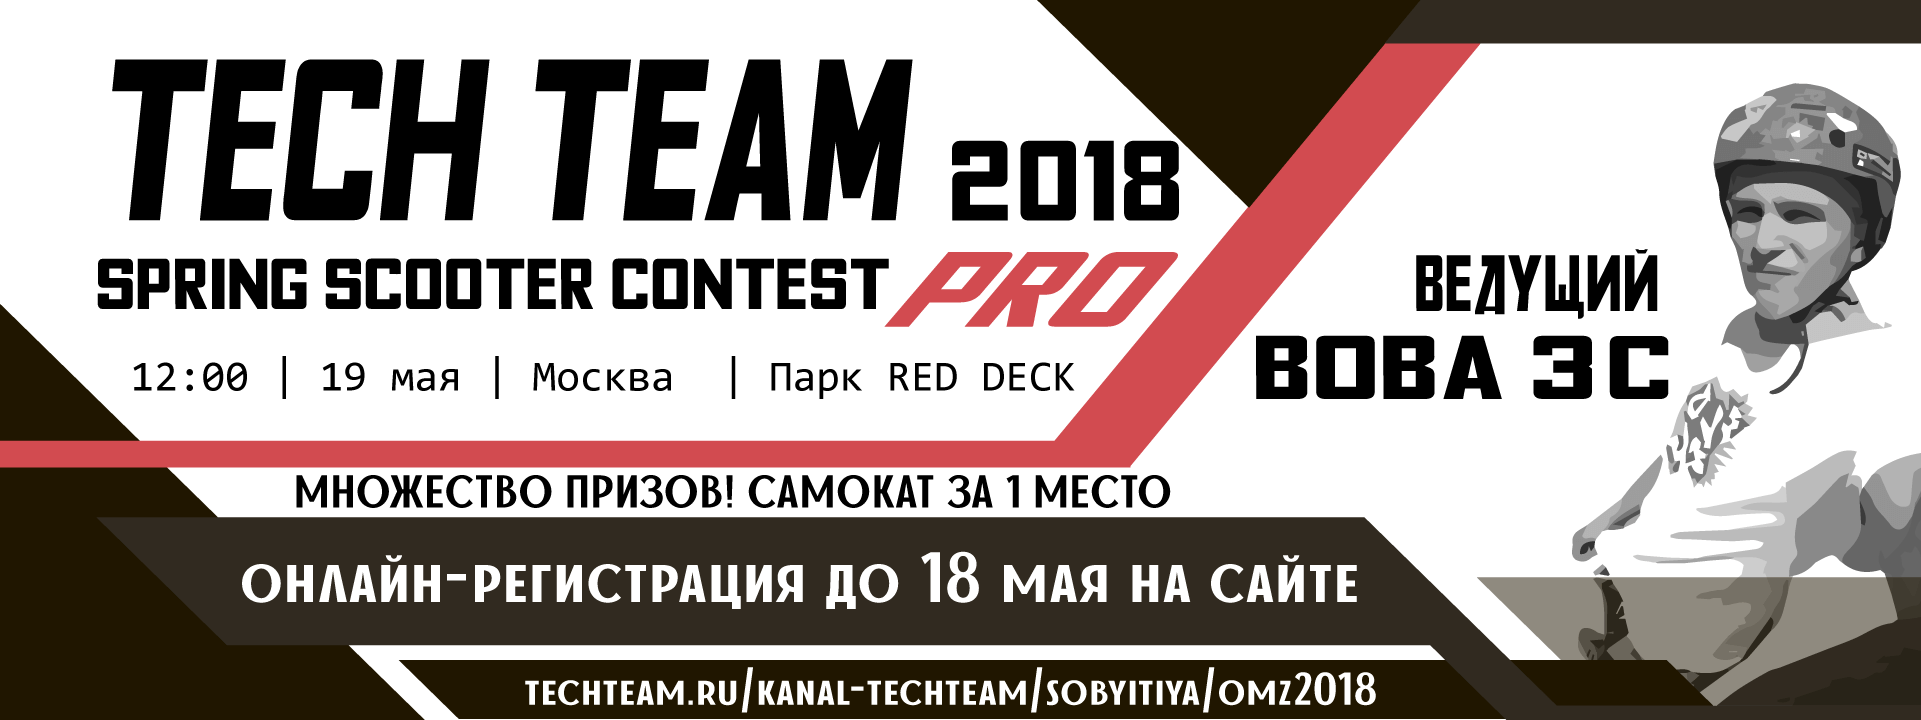 Регистрация Tech Team Scooter Contest 2018